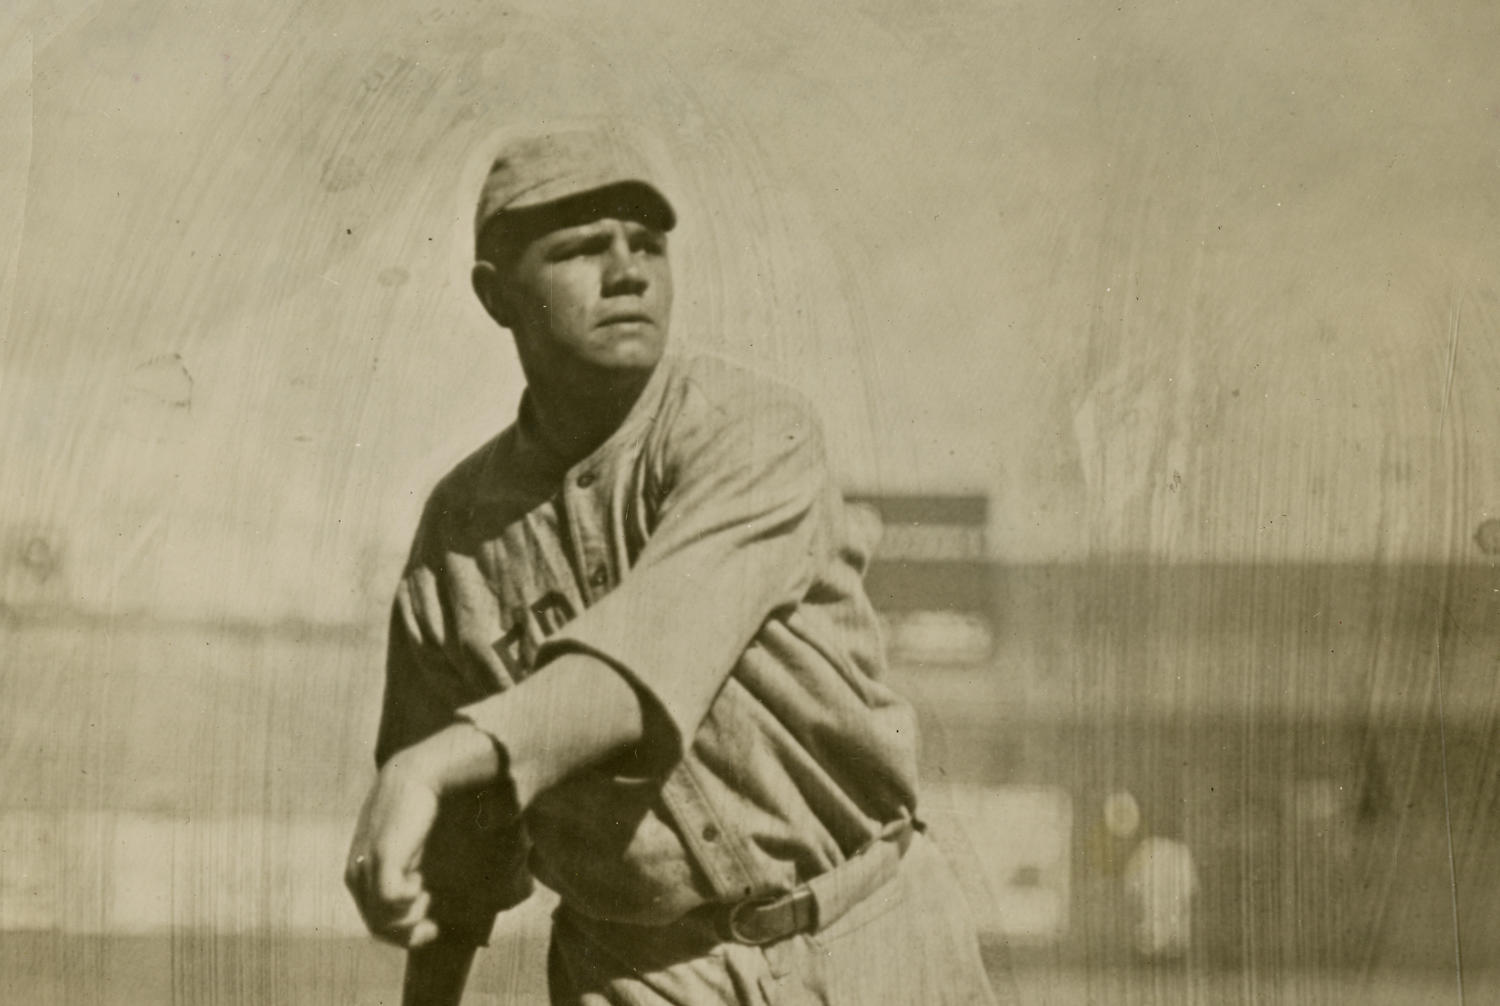 Babe Ruth led the Red Sox to a World Series title in 1916, where he pitched a 14-inning complete game in his postseason debut. (National Baseball Hall of Fame and Museum)